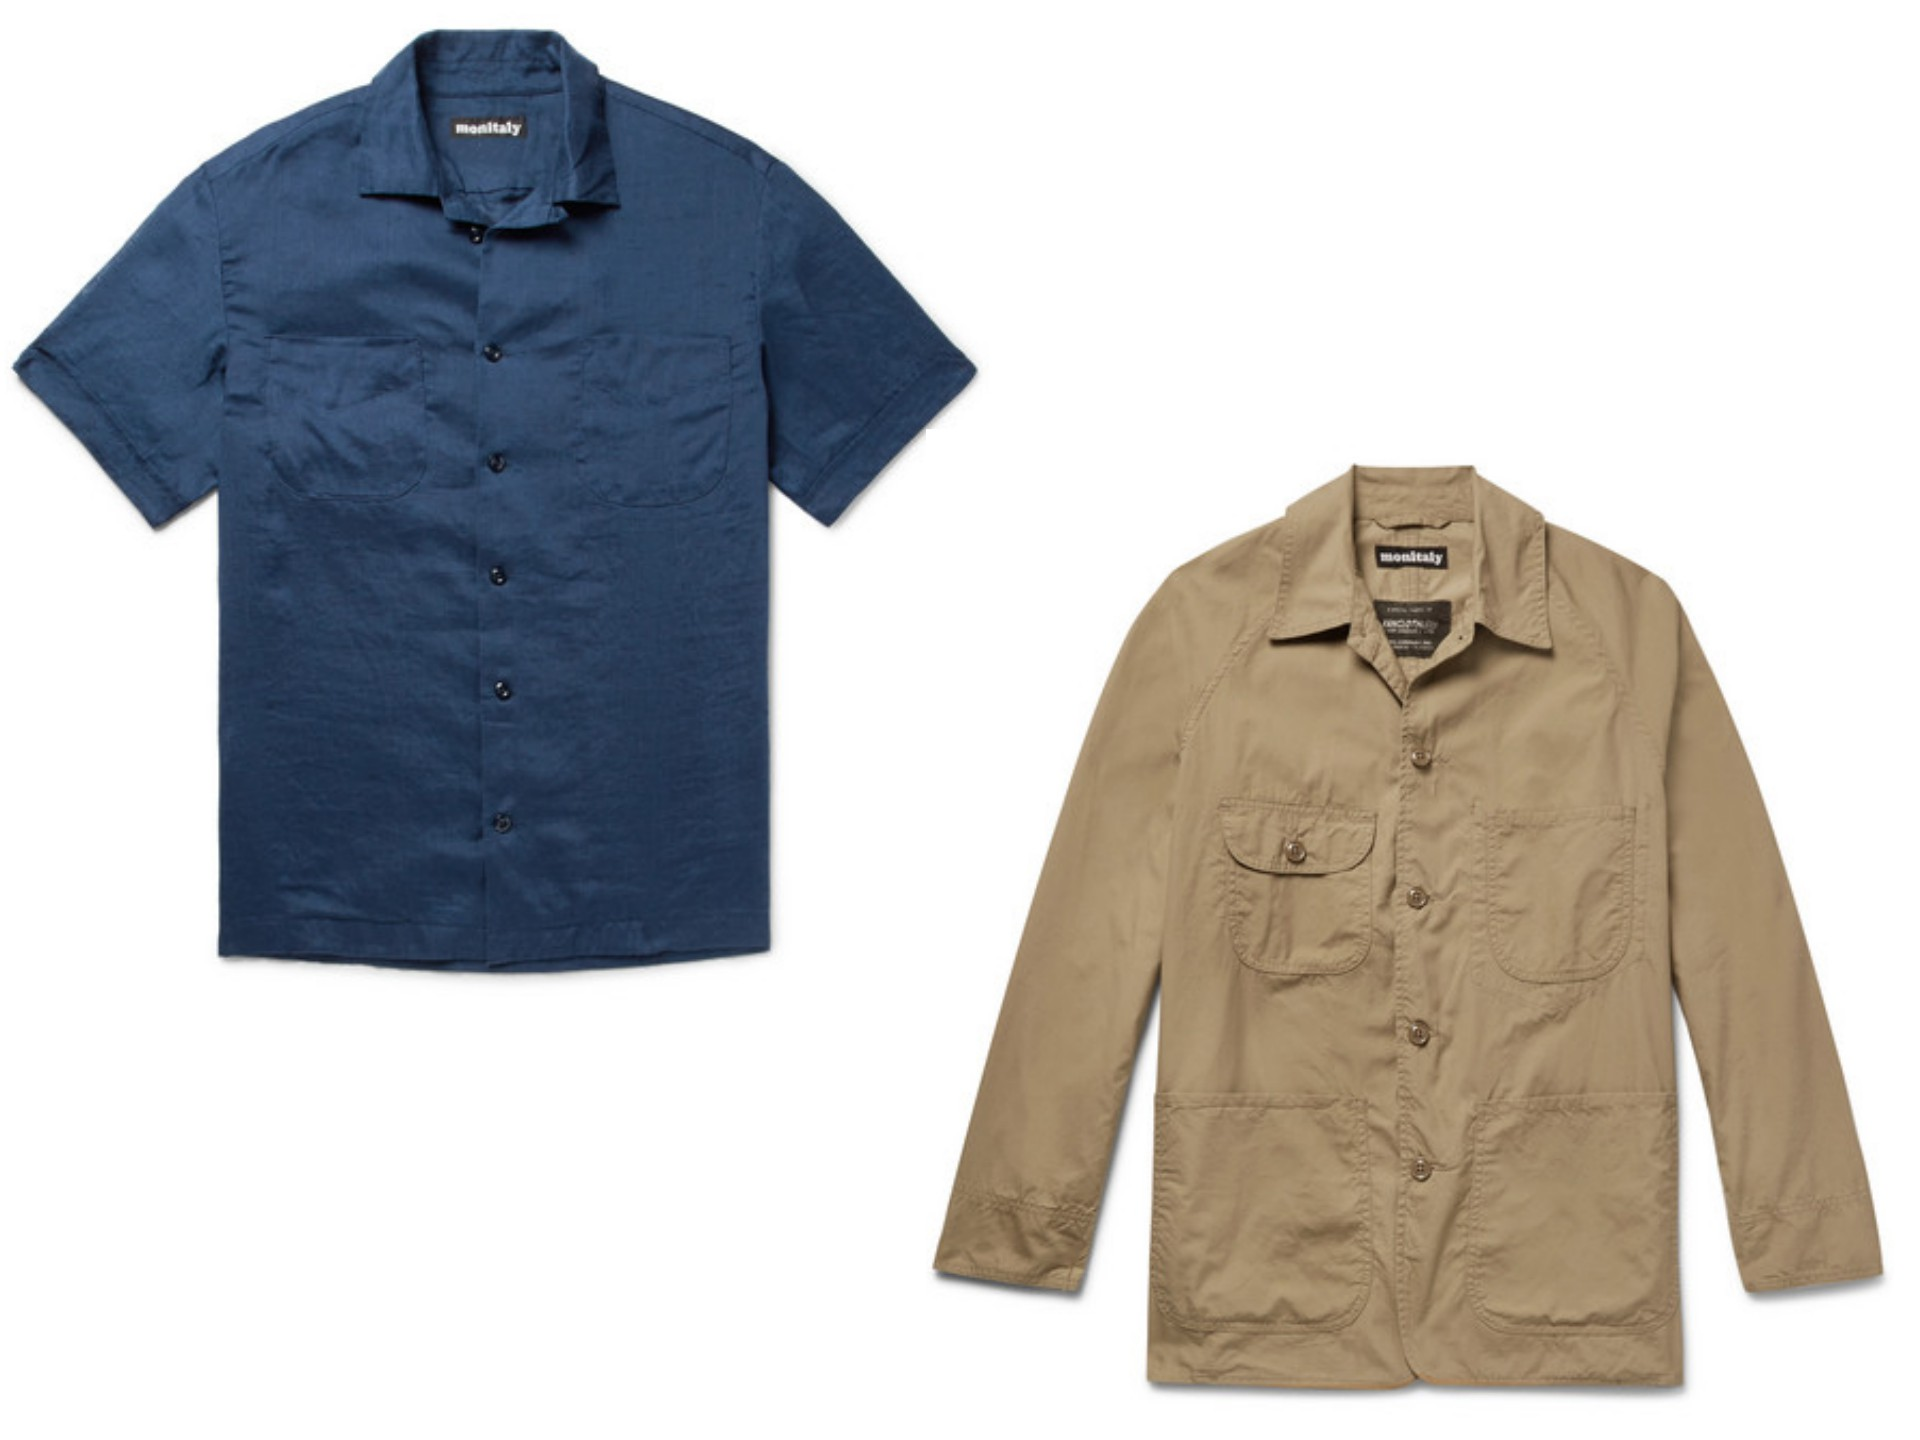 what brands that you must know at mrporter monitaly 1  - Mr Porter 有你值得关注的国外时尚品牌